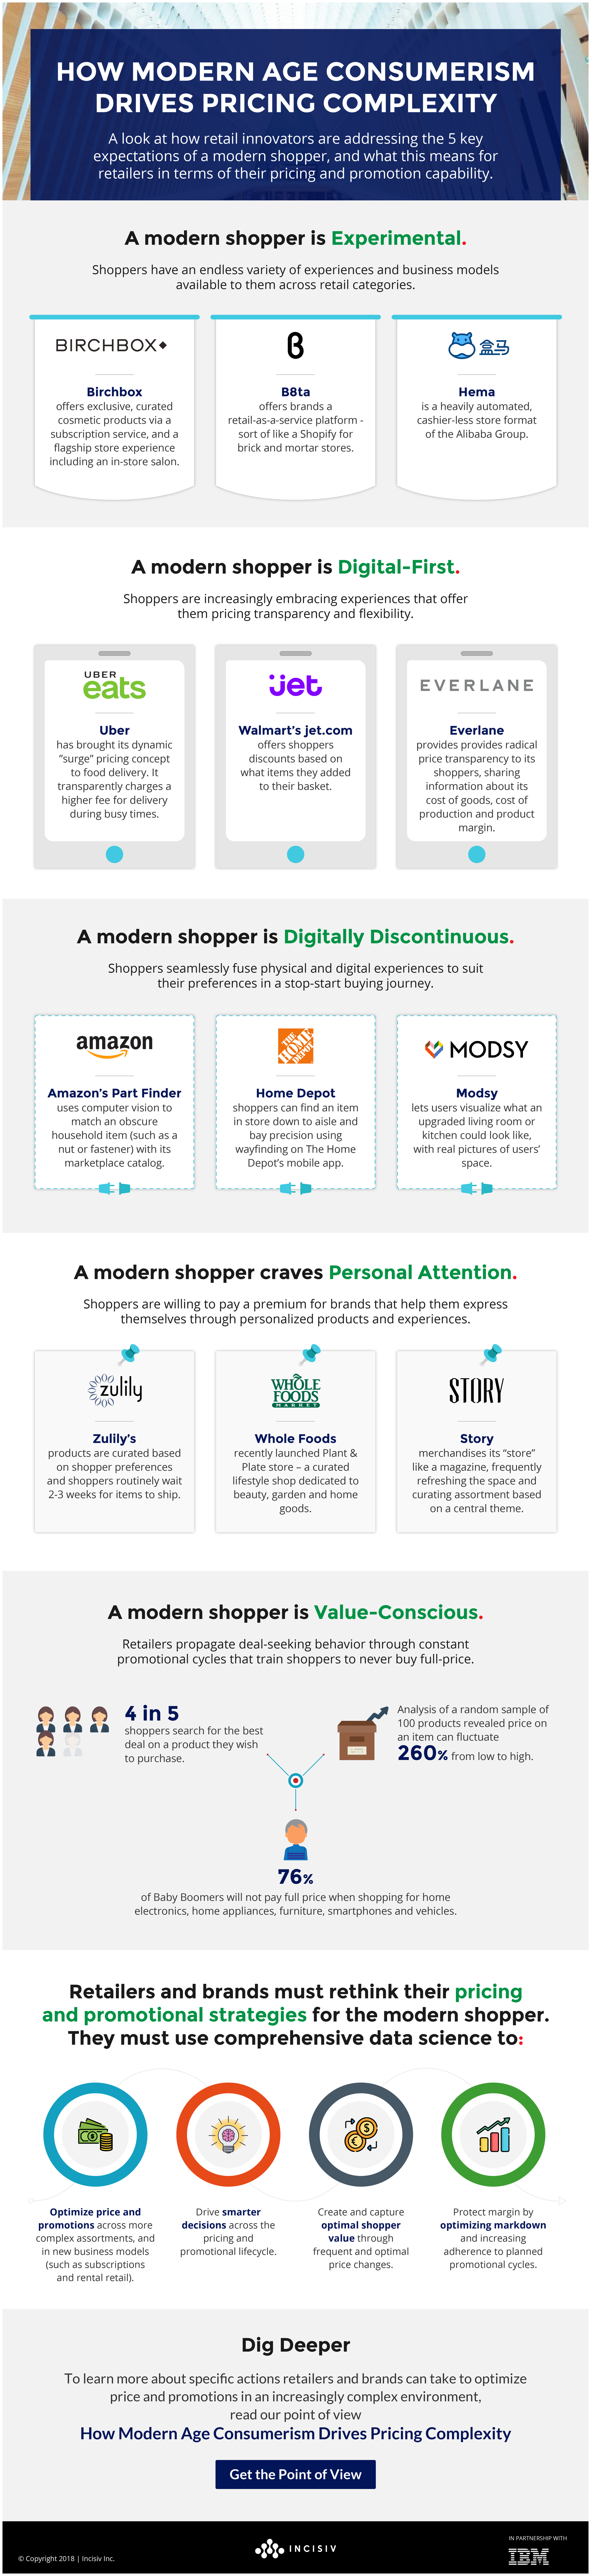 How Modern Age Consumerism Drives pricing Complexity, Infographic